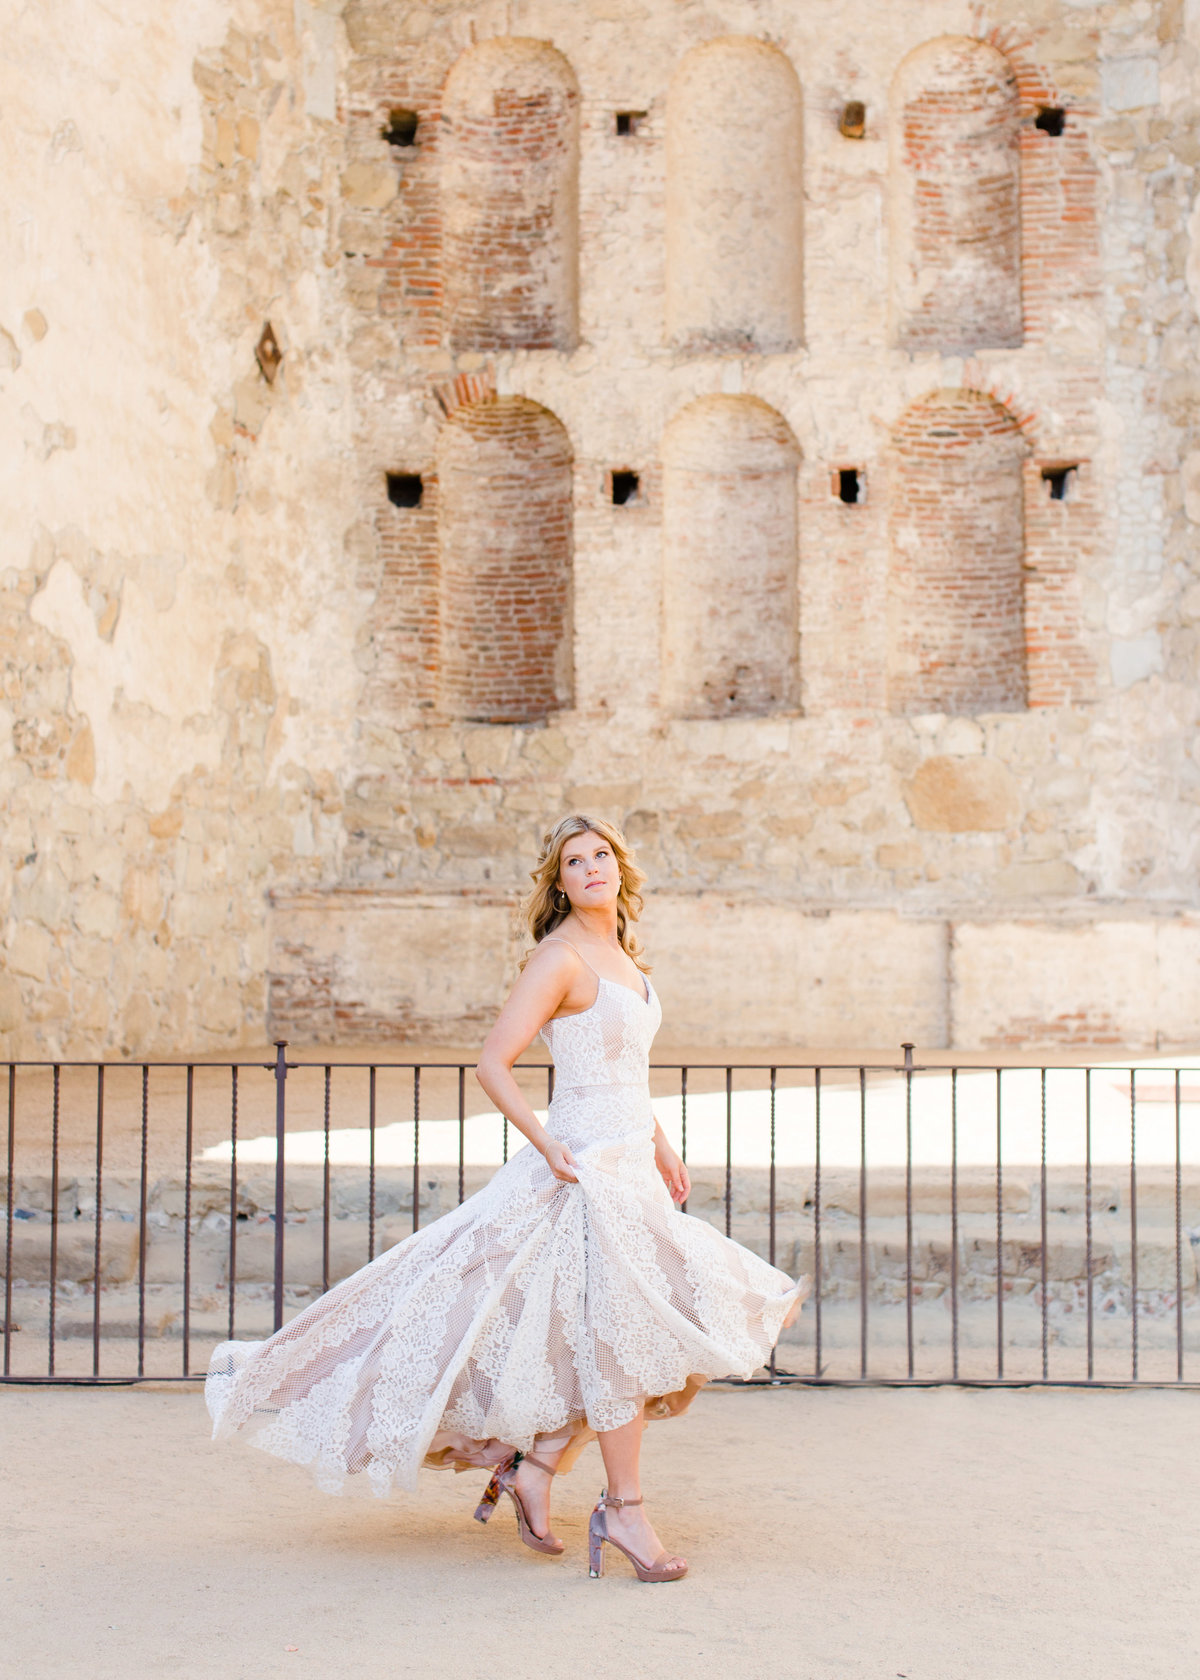 Katherine_beth_photography_San_diego_wedding_photographer_san_diego_wedding_san_juan_capistrano_wedding_001